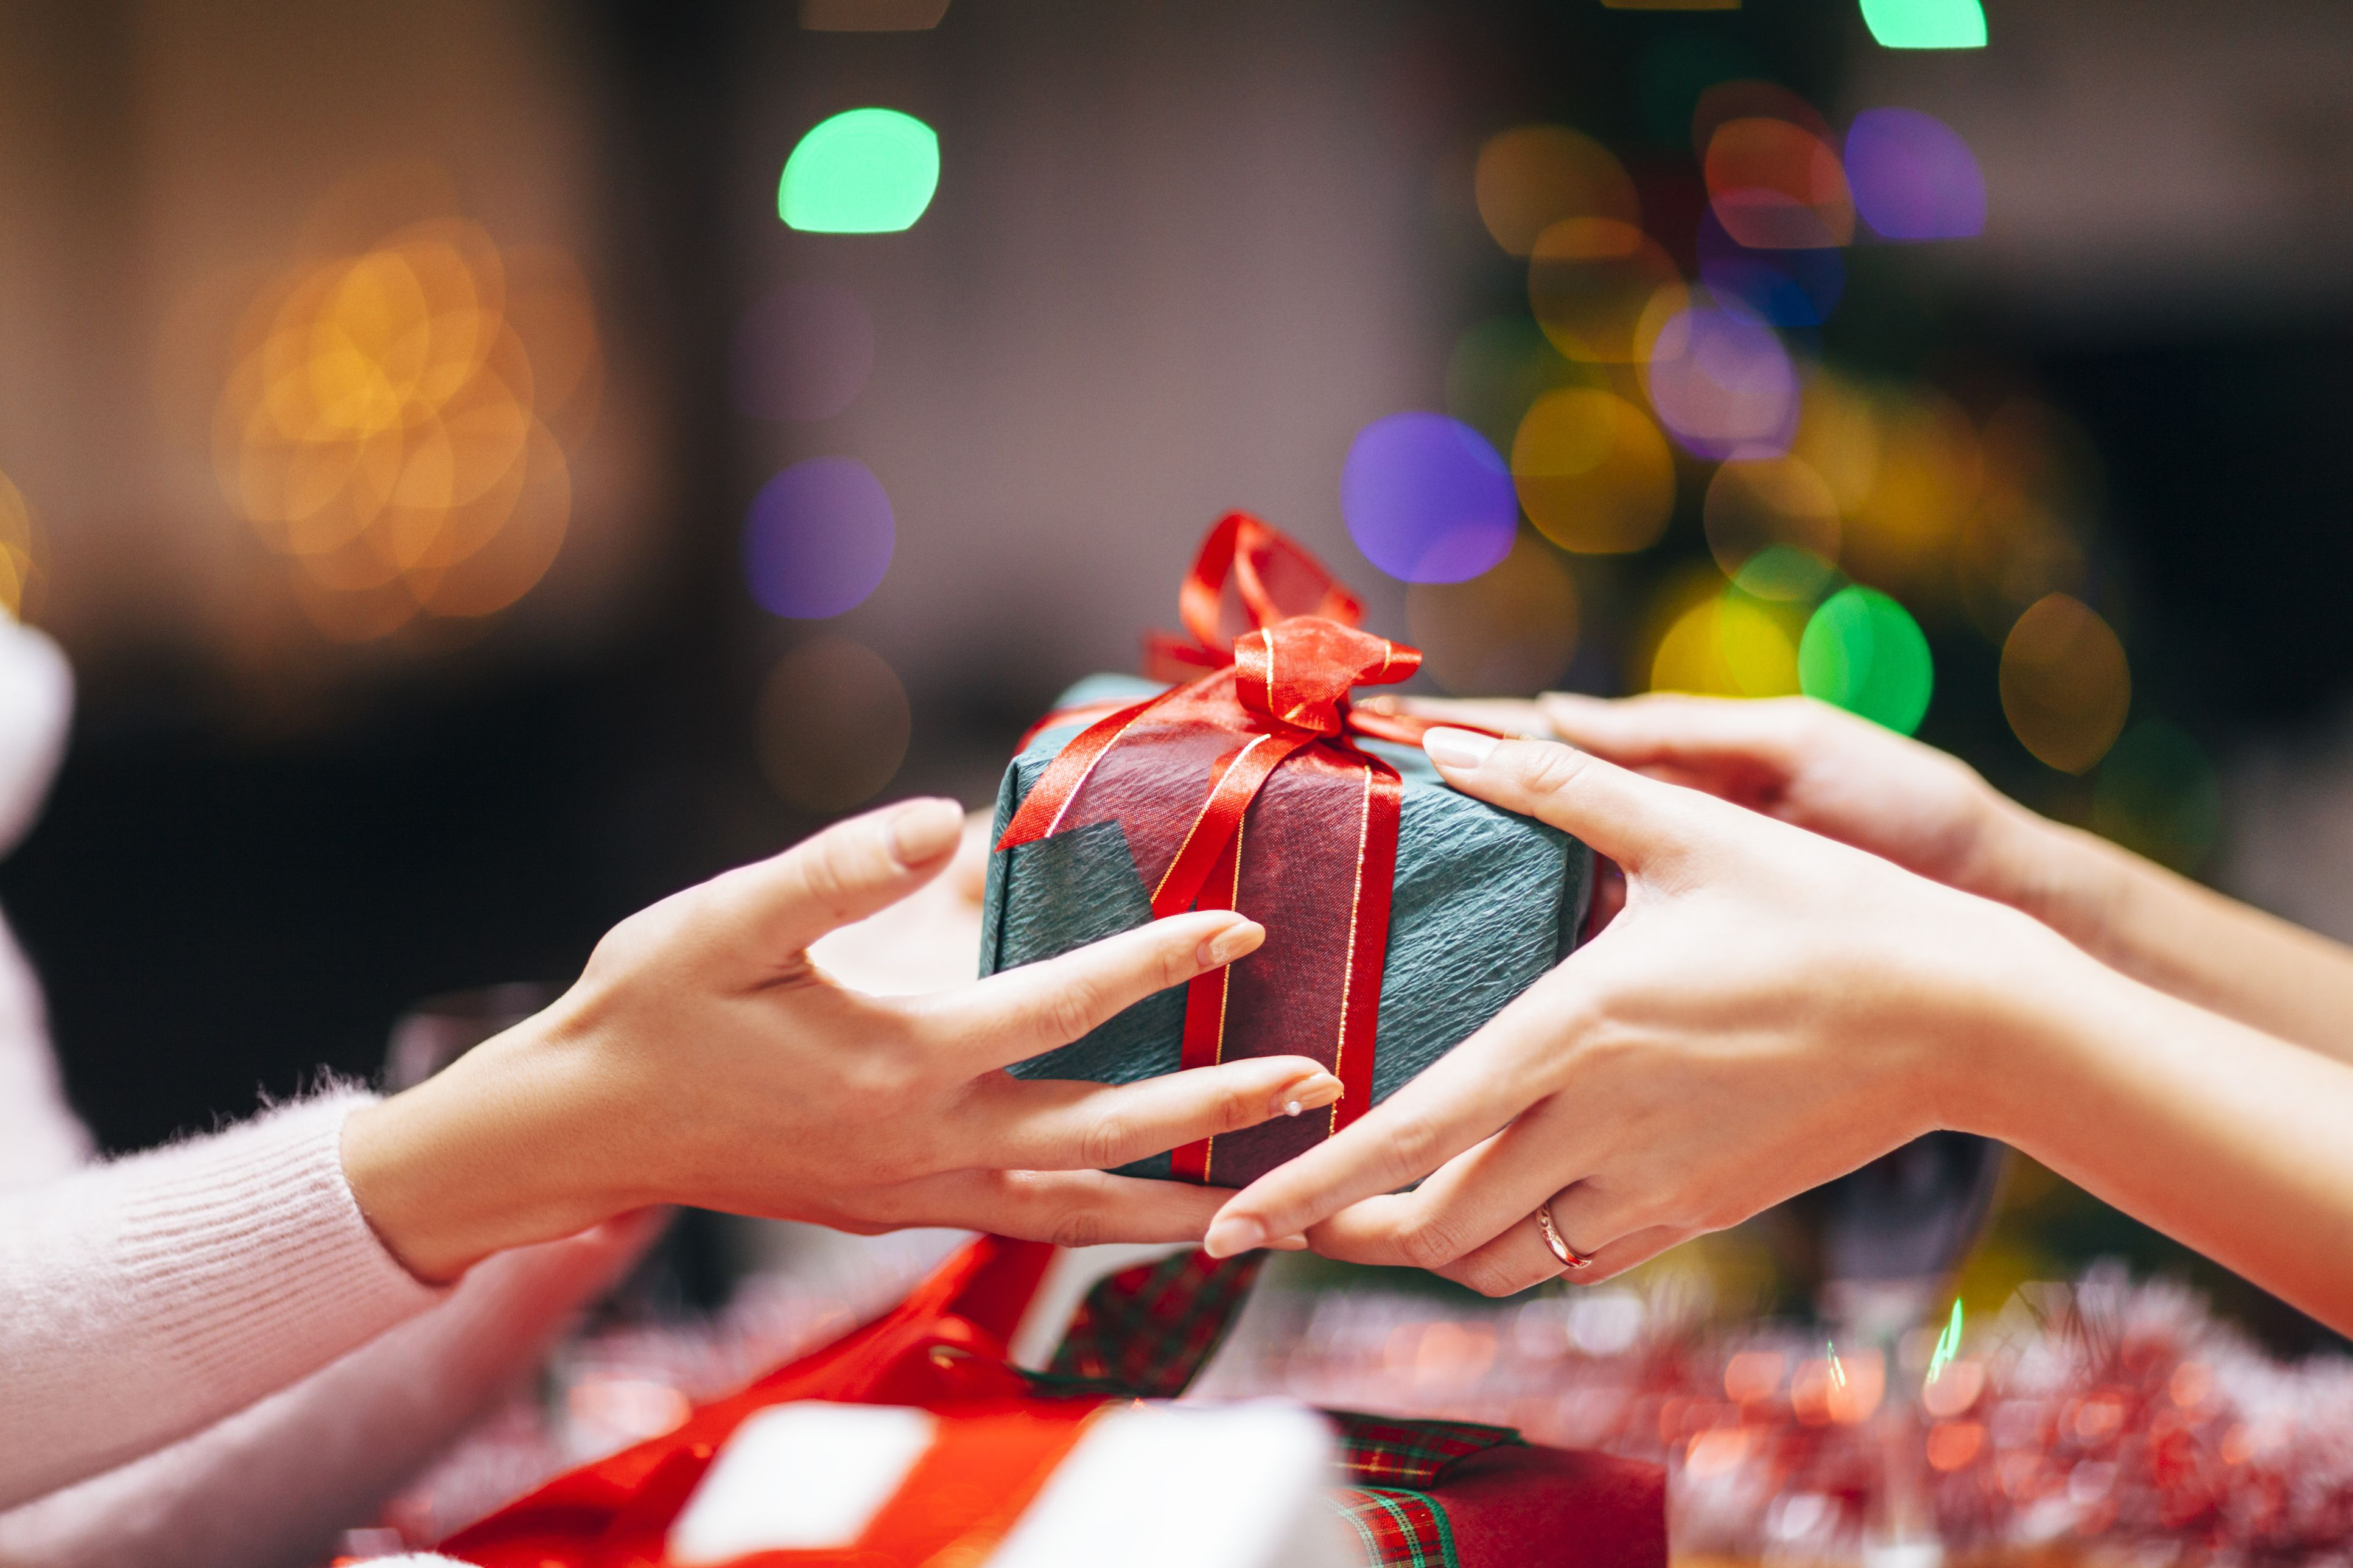 Hands Giving Gift Close-up & 20 Best White Elephant Gifts For 2018 - Presents For $20 Or Less